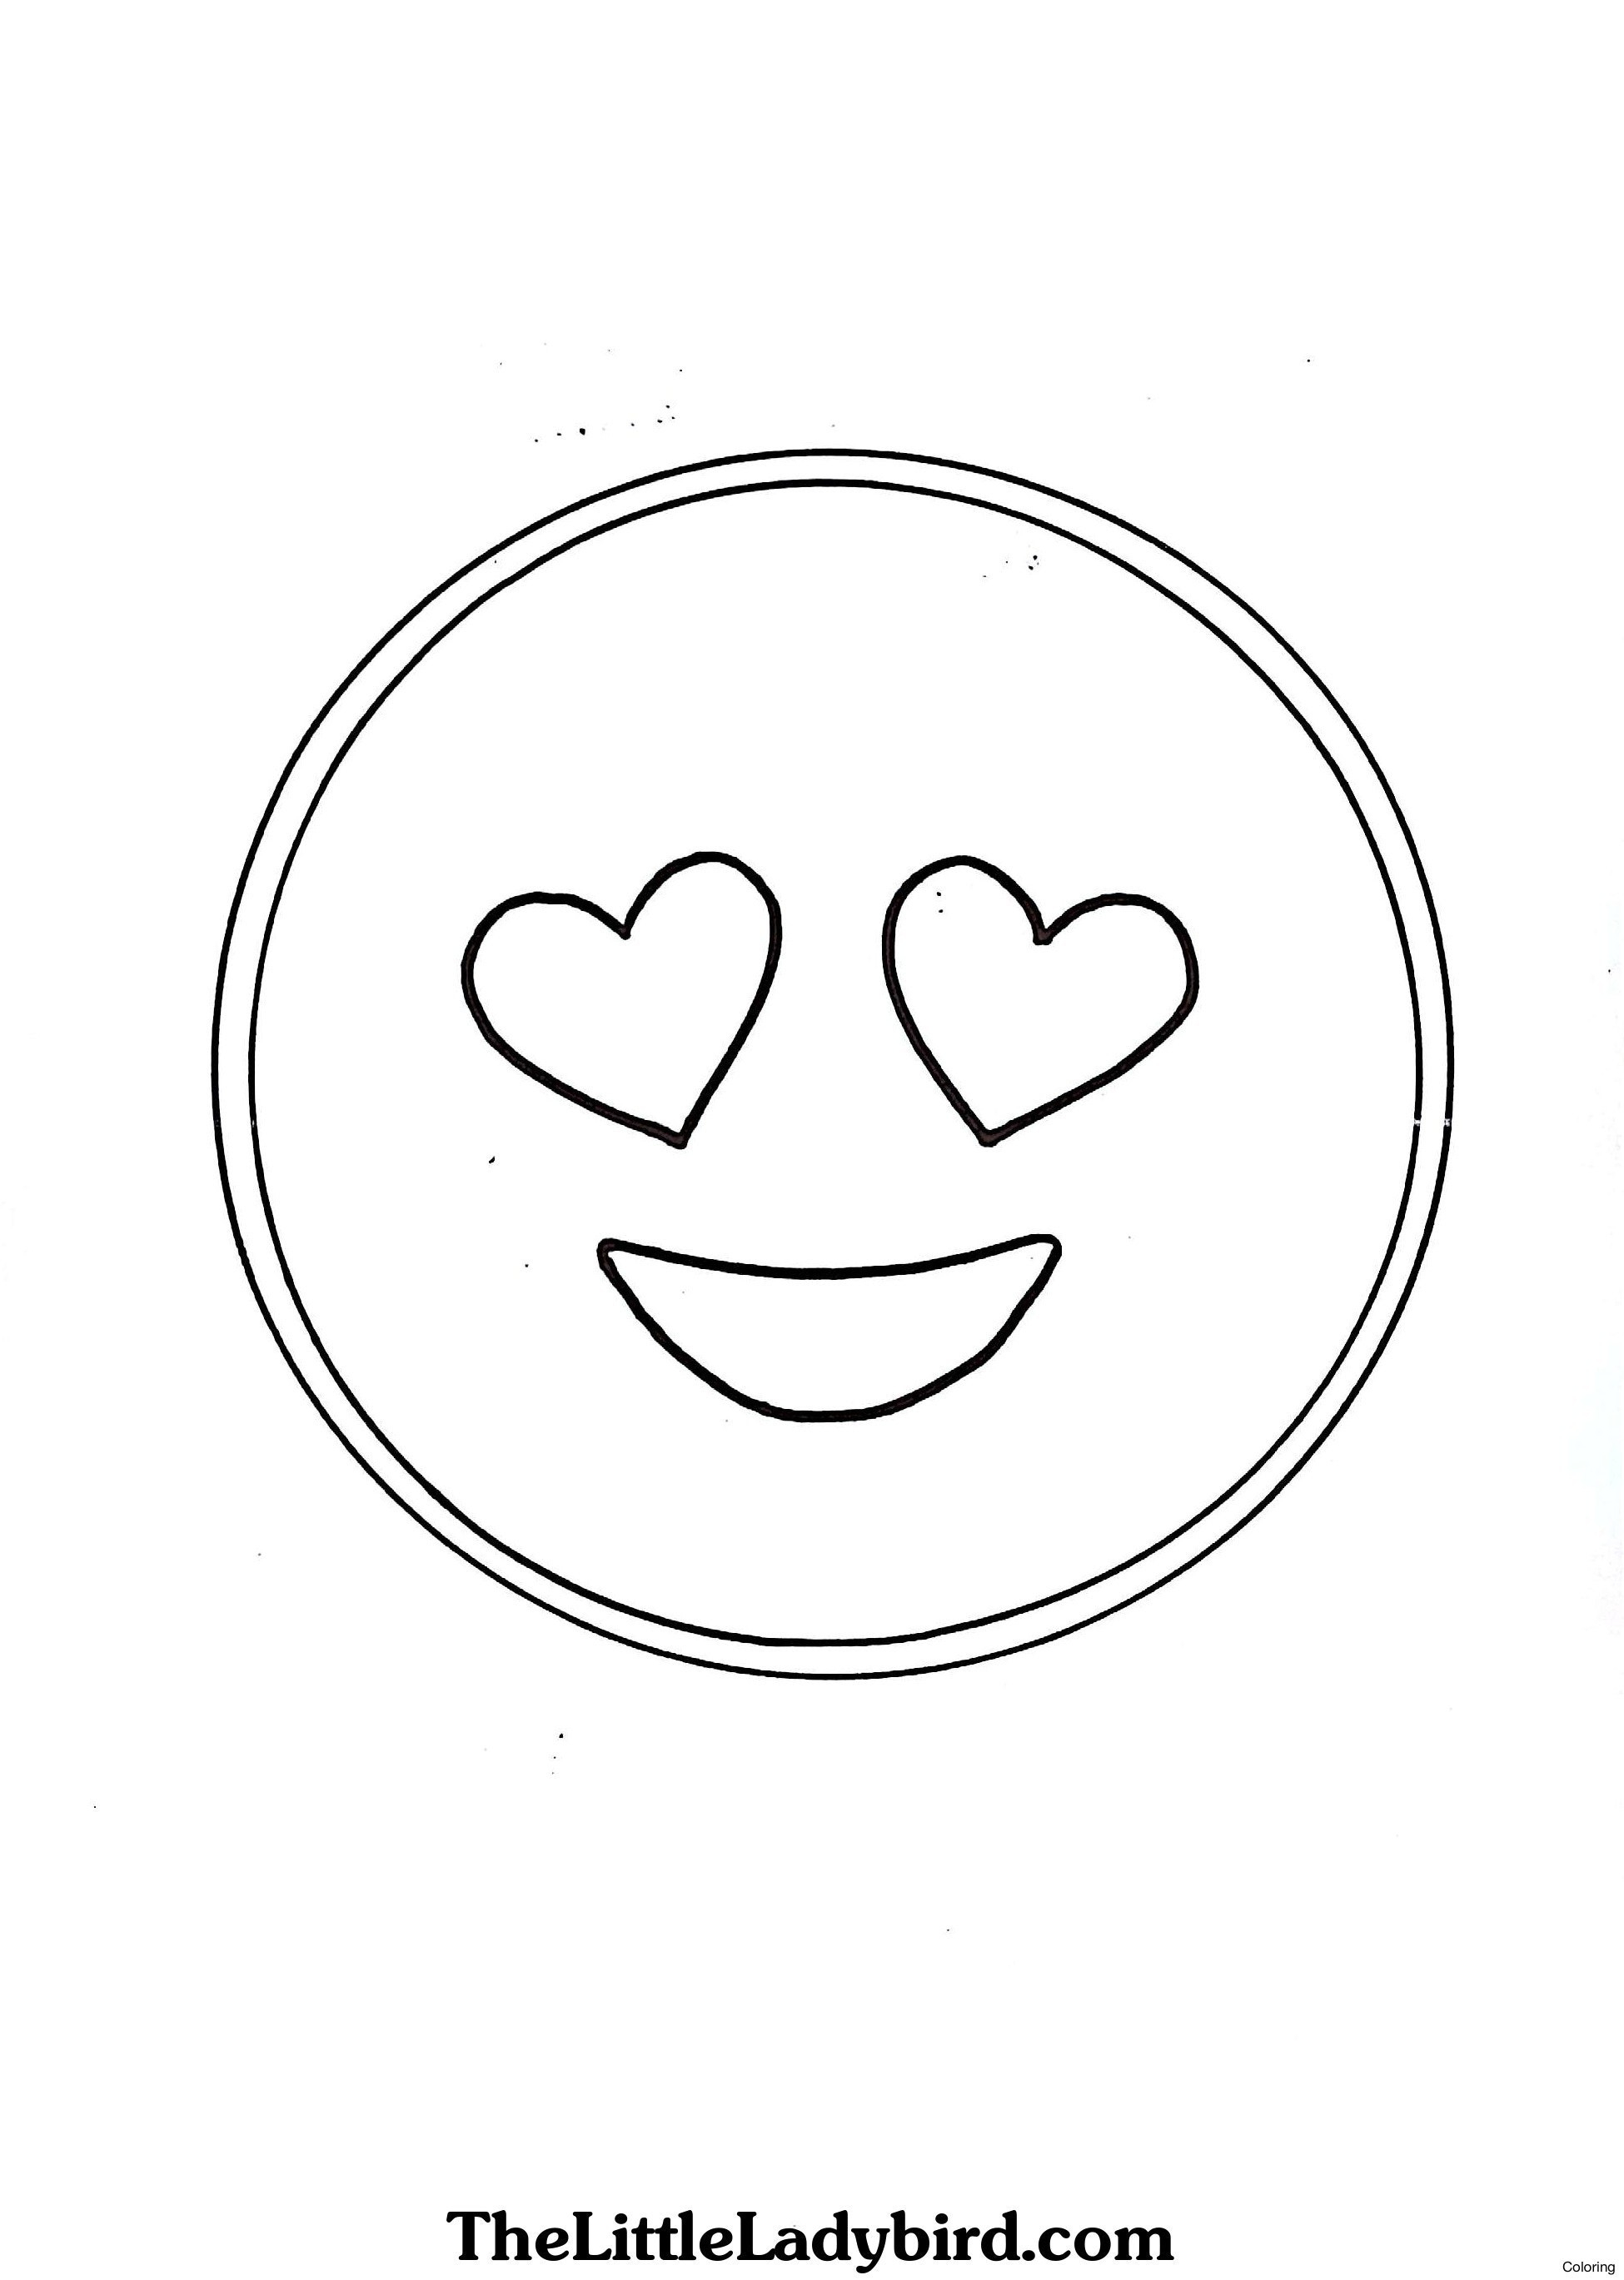 Free Emoji Coloring Pages  to Print 18h - To print for your project